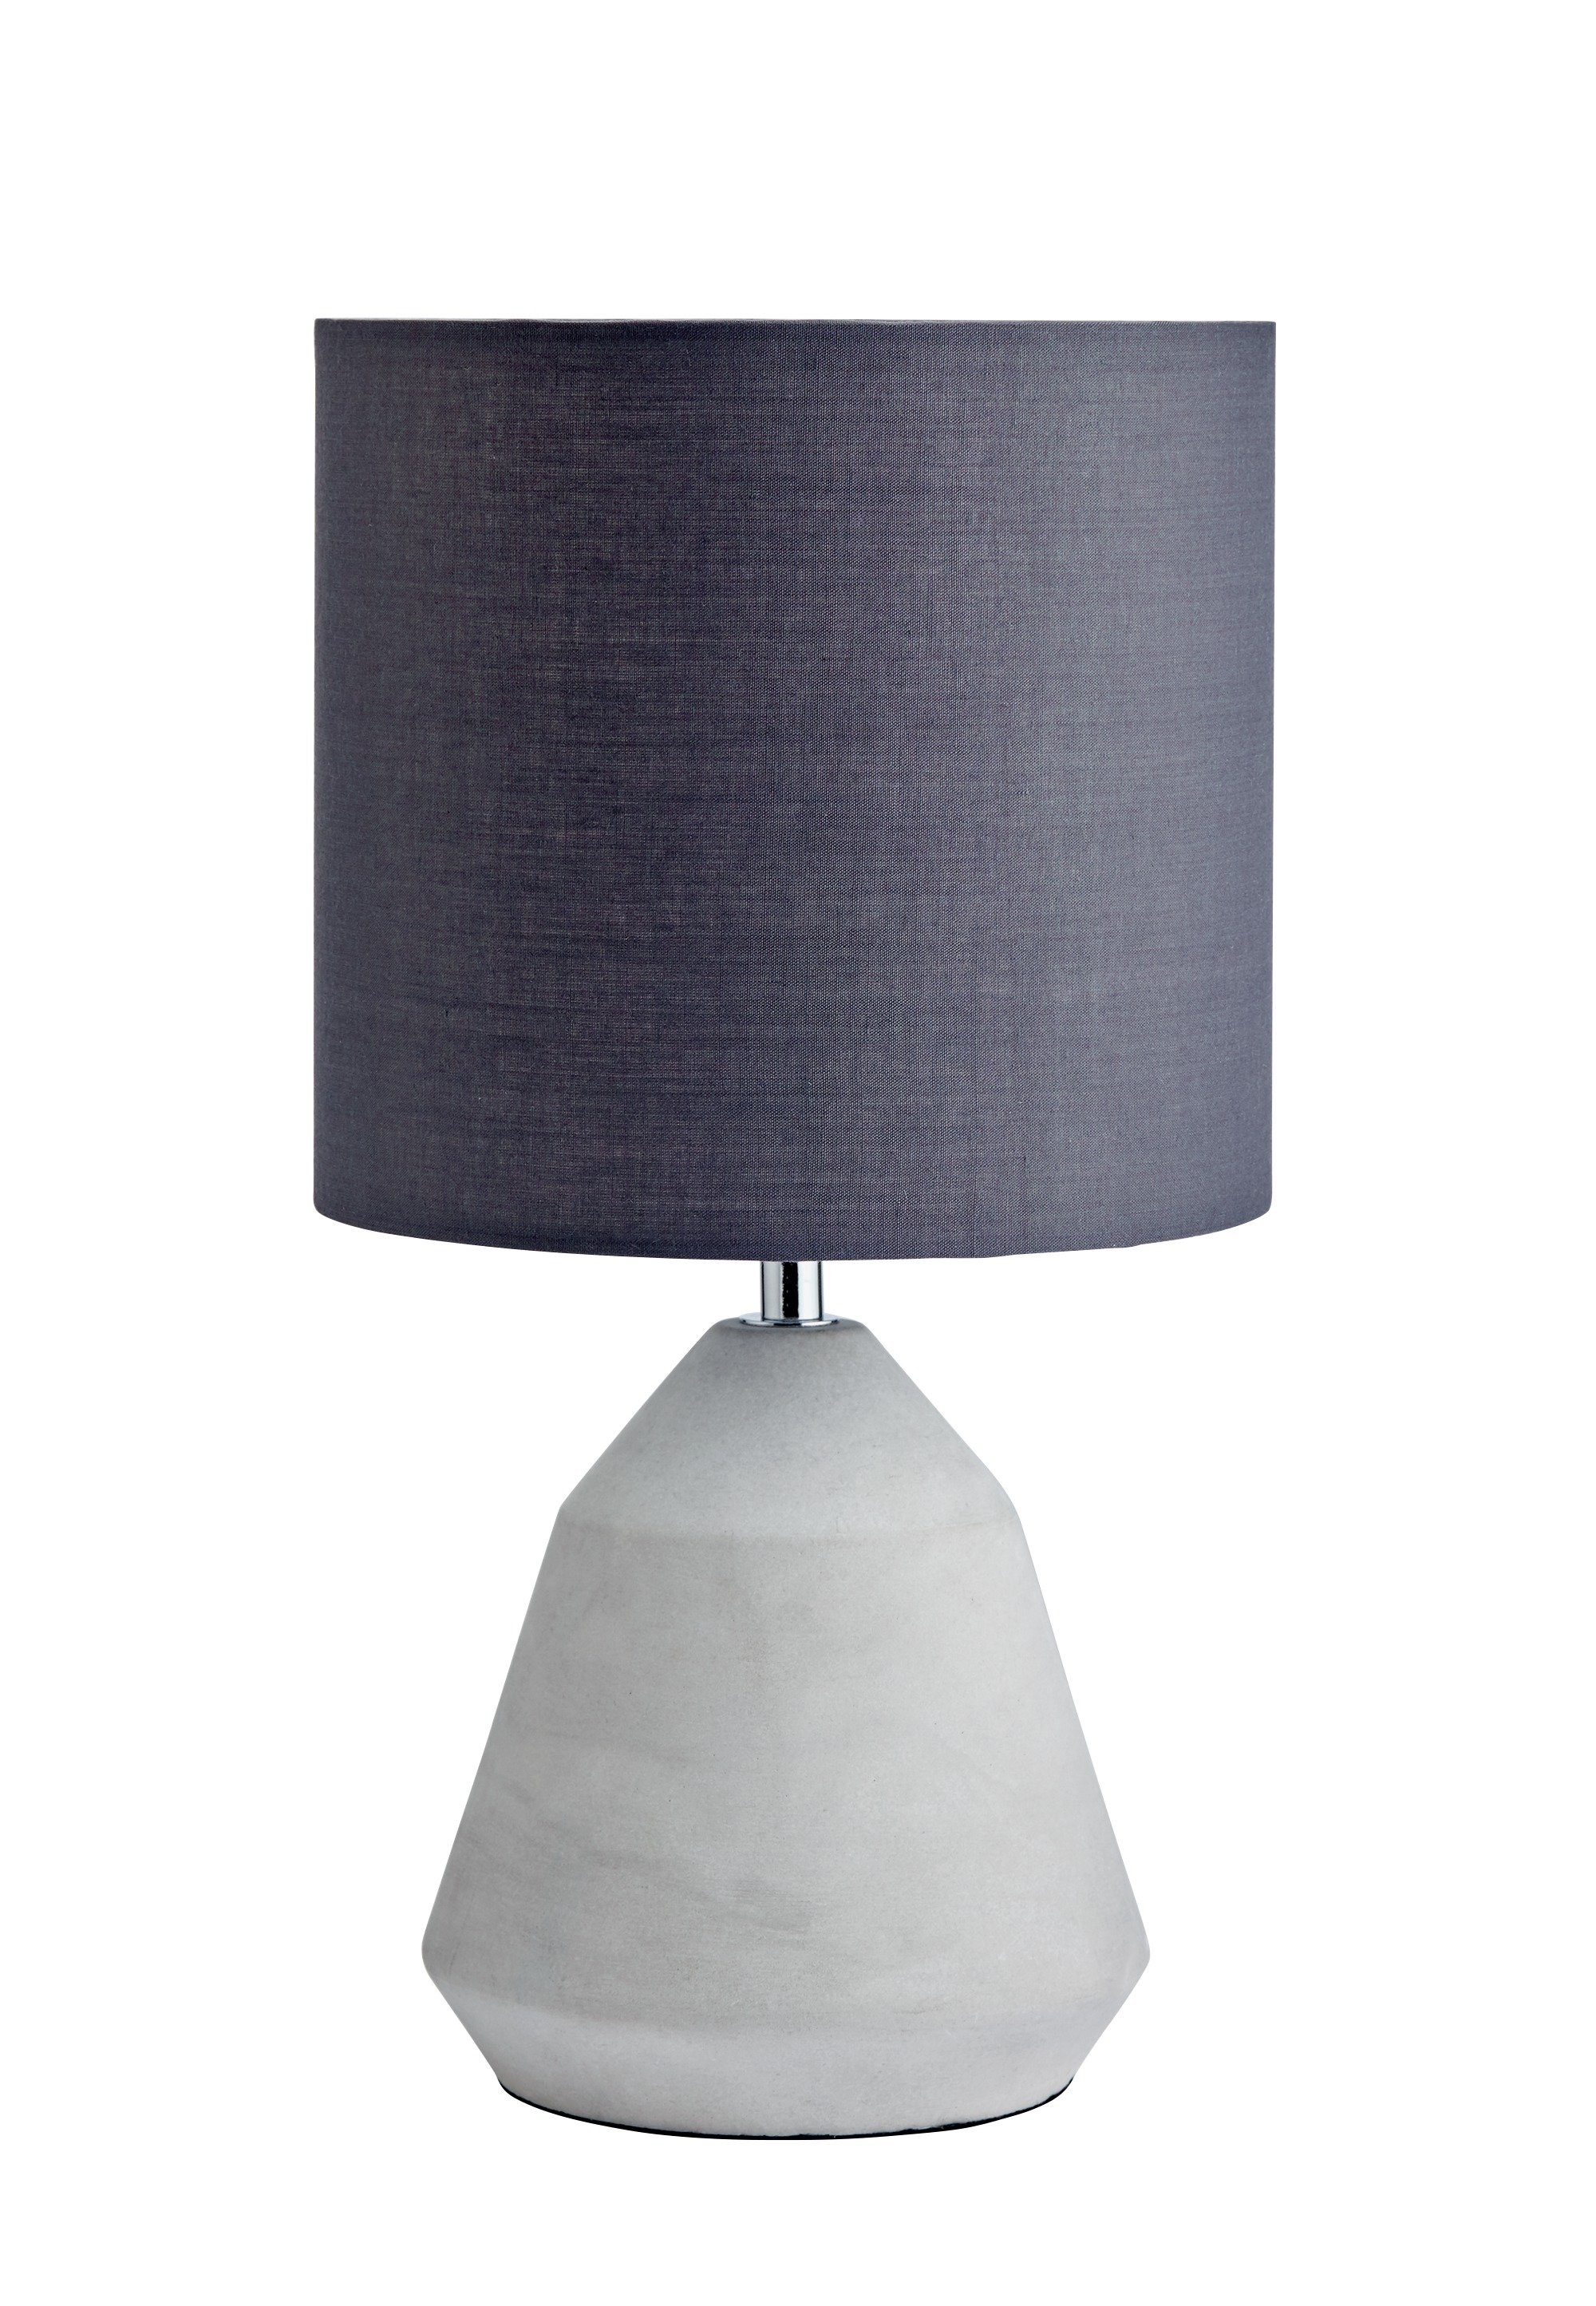 Image of Collection Condy Concrete Table Lamp